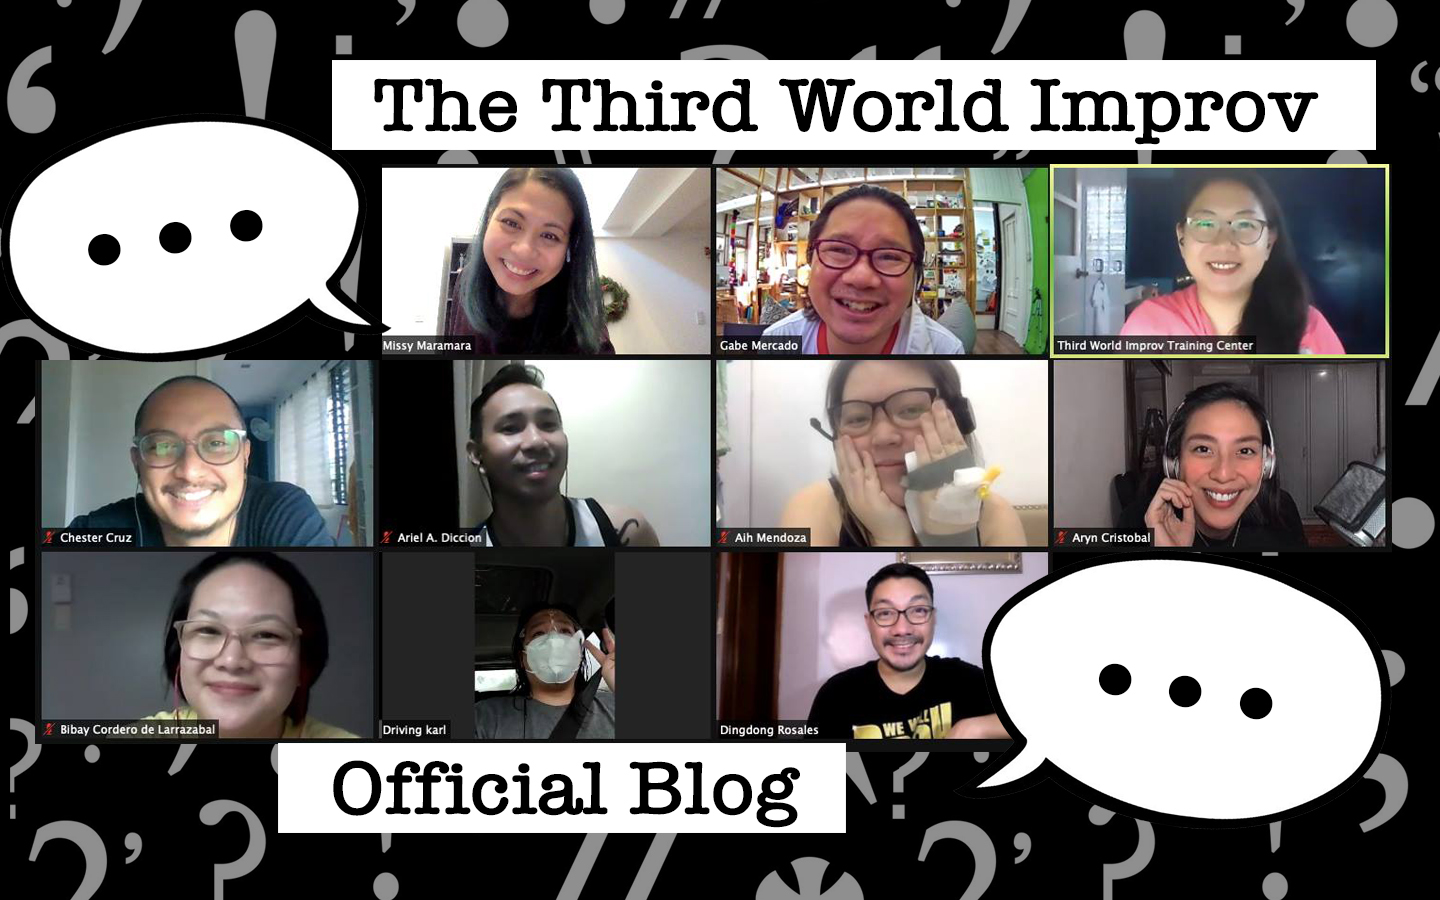 It's official: Welcome to the Third World Improv blog!